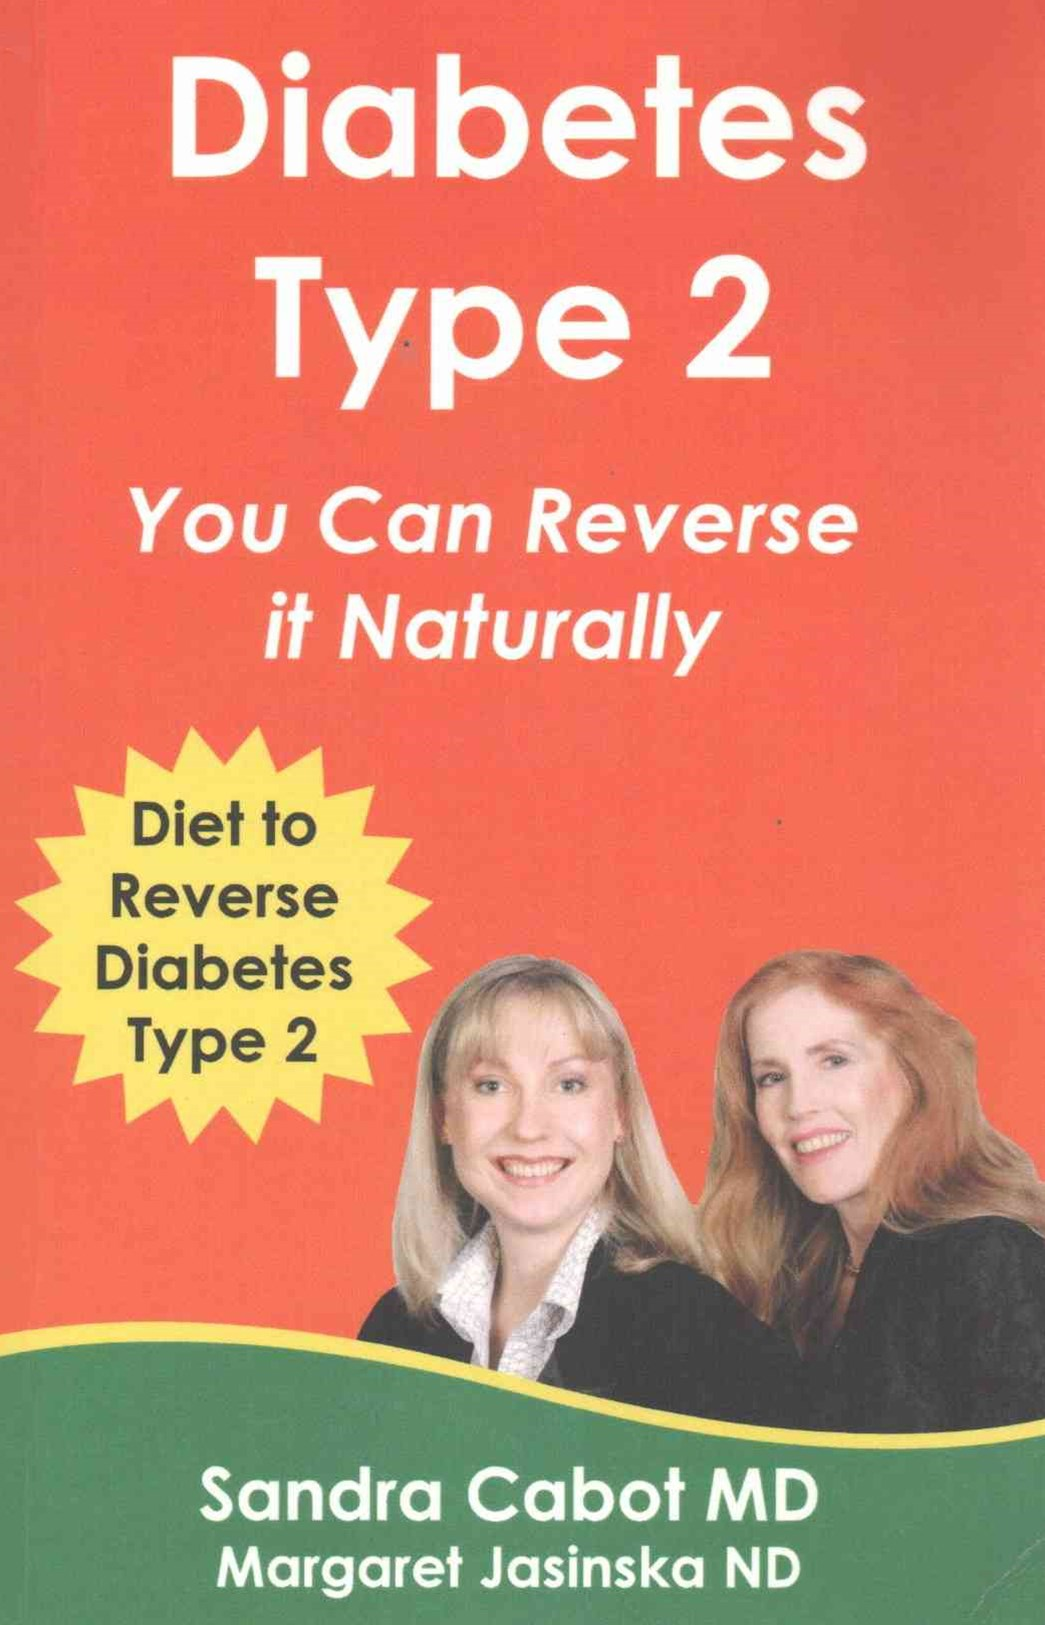 Diabetes Type 2 You Can Reverse It Naturally!